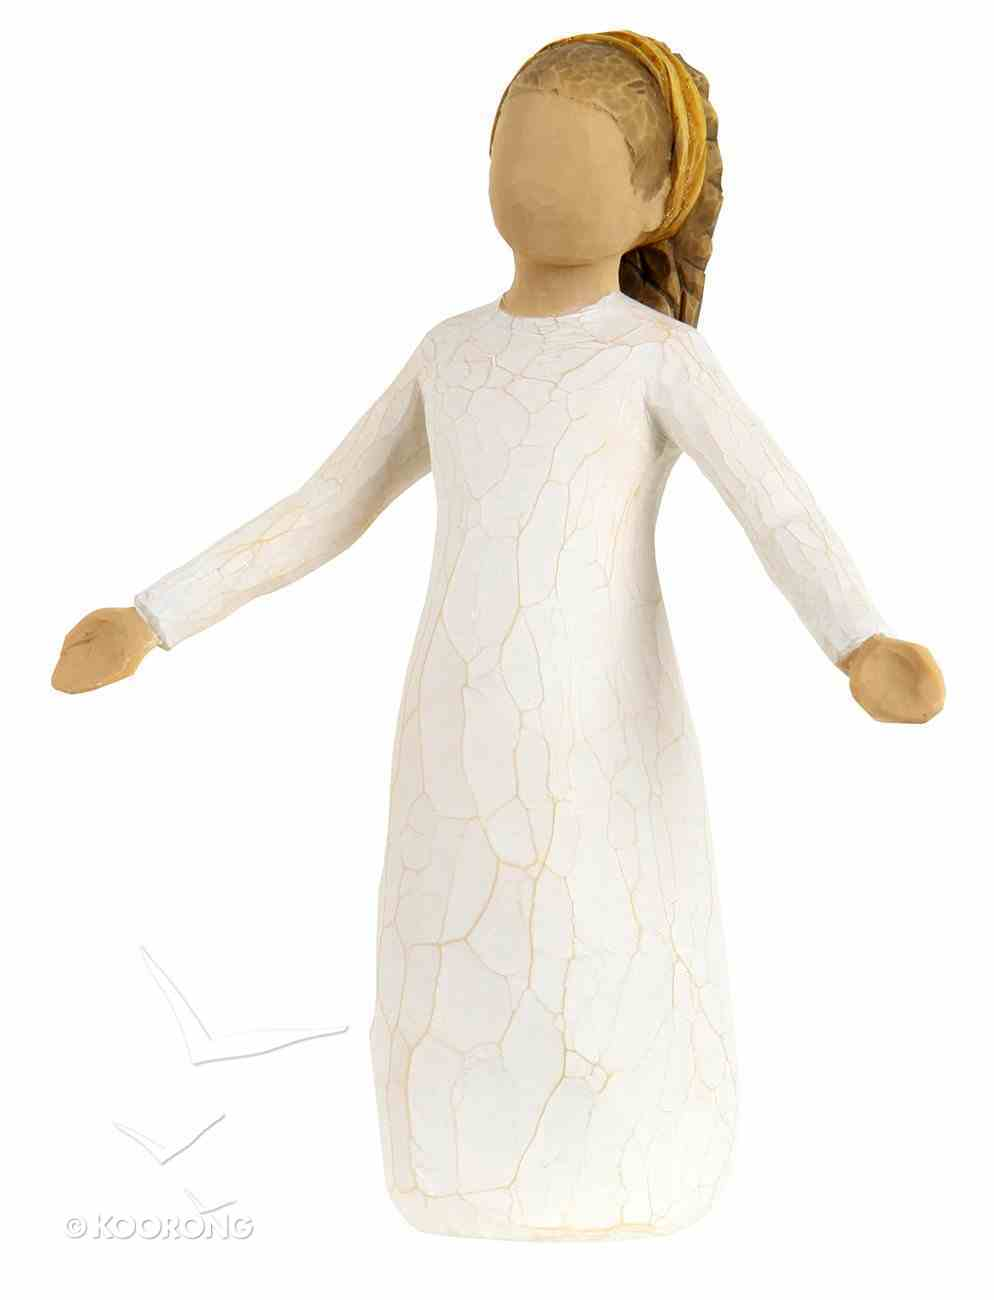 Willow Tree Figurine: Blessings Homeware